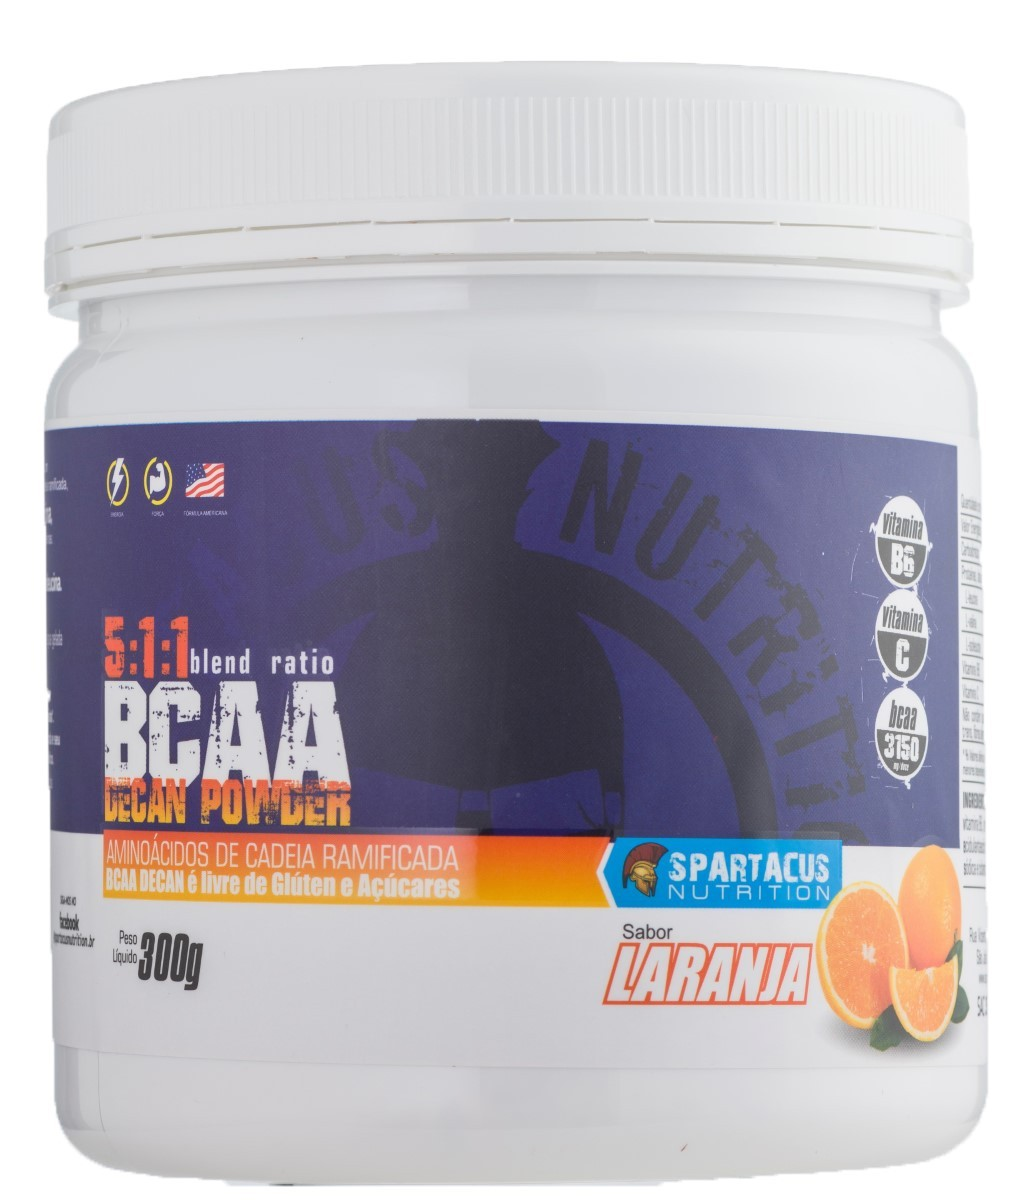 Bcaa Decan Powder 5:1:1 - Spartacus Nutrition 300g